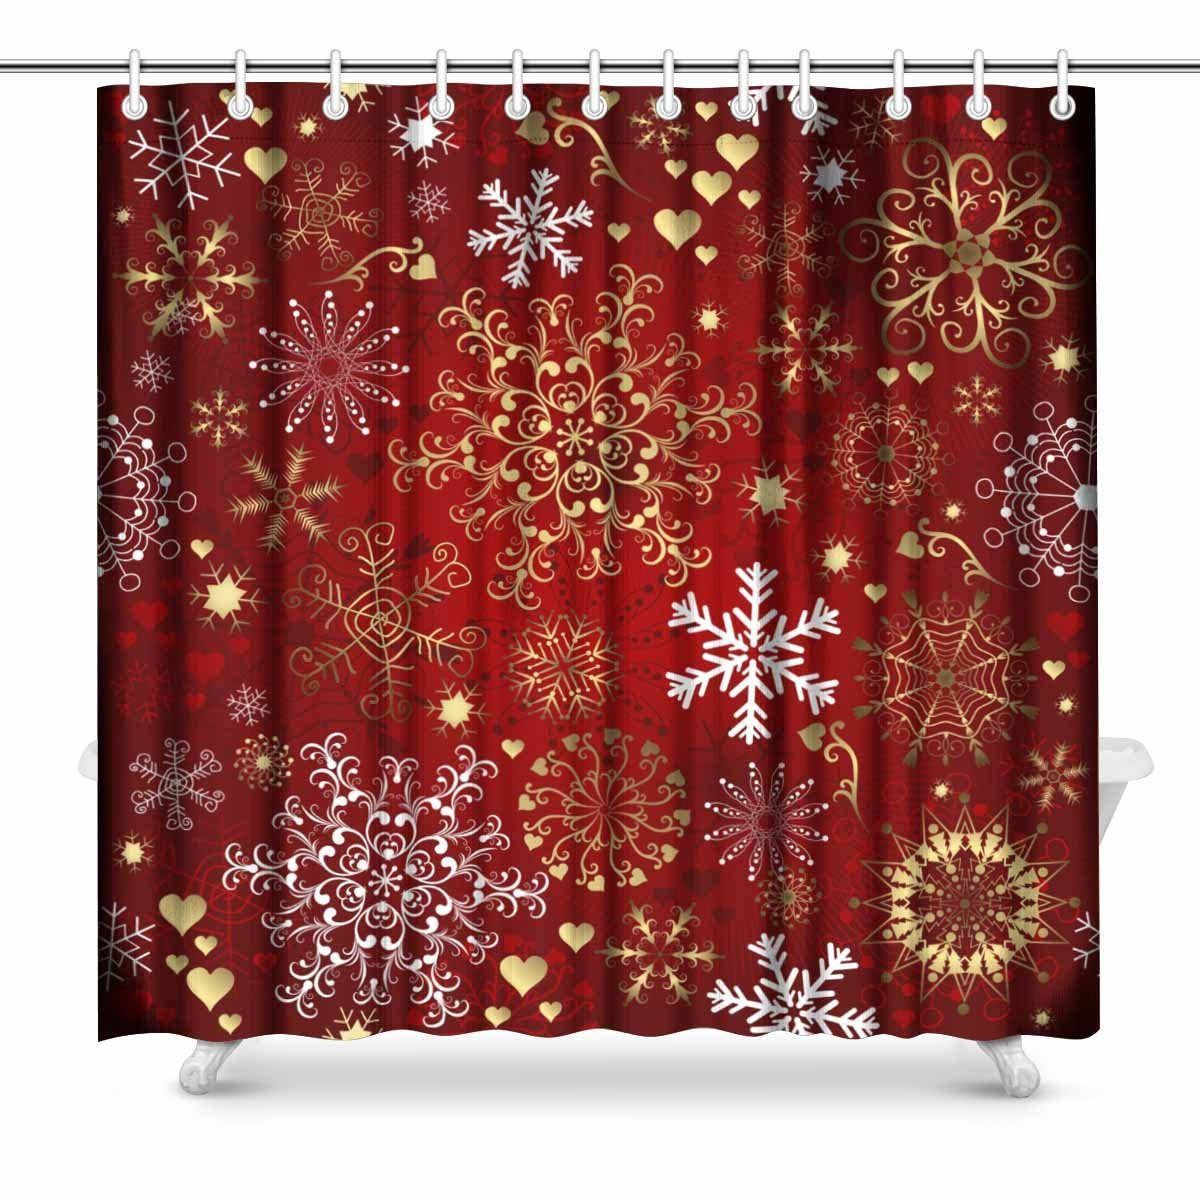 Aplysia Christmas Red Seamless Pattern with Gold and White Snowflakes Fabric Bathroom Shower Curtain Decor Set with Hooks